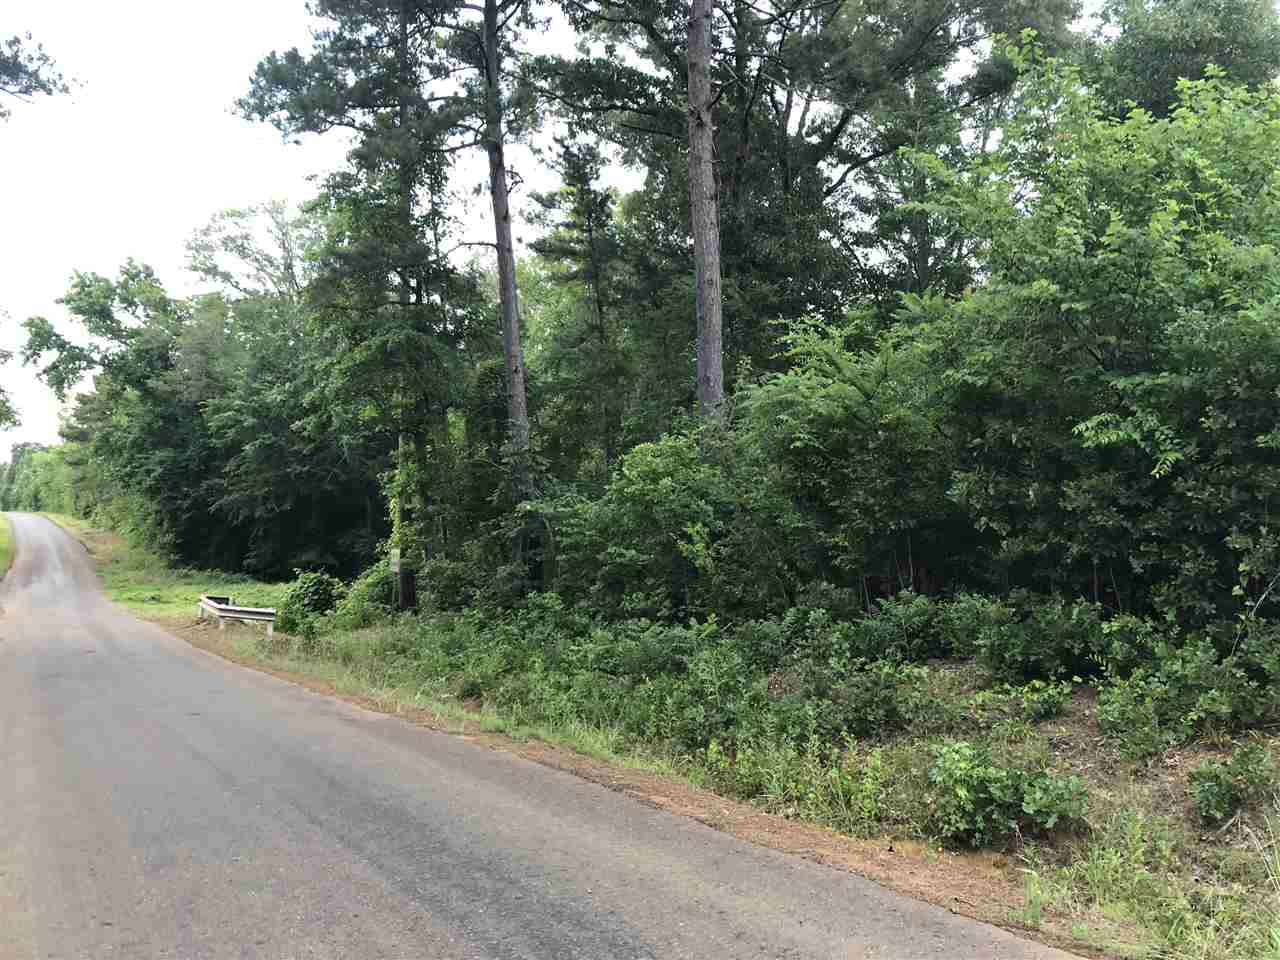 20 wonderful acres off CR 1111 in Kilgore, TX. This prime real estate has several great spots to build a home, and is partially wooded in some areas. Going fast so call today!!!